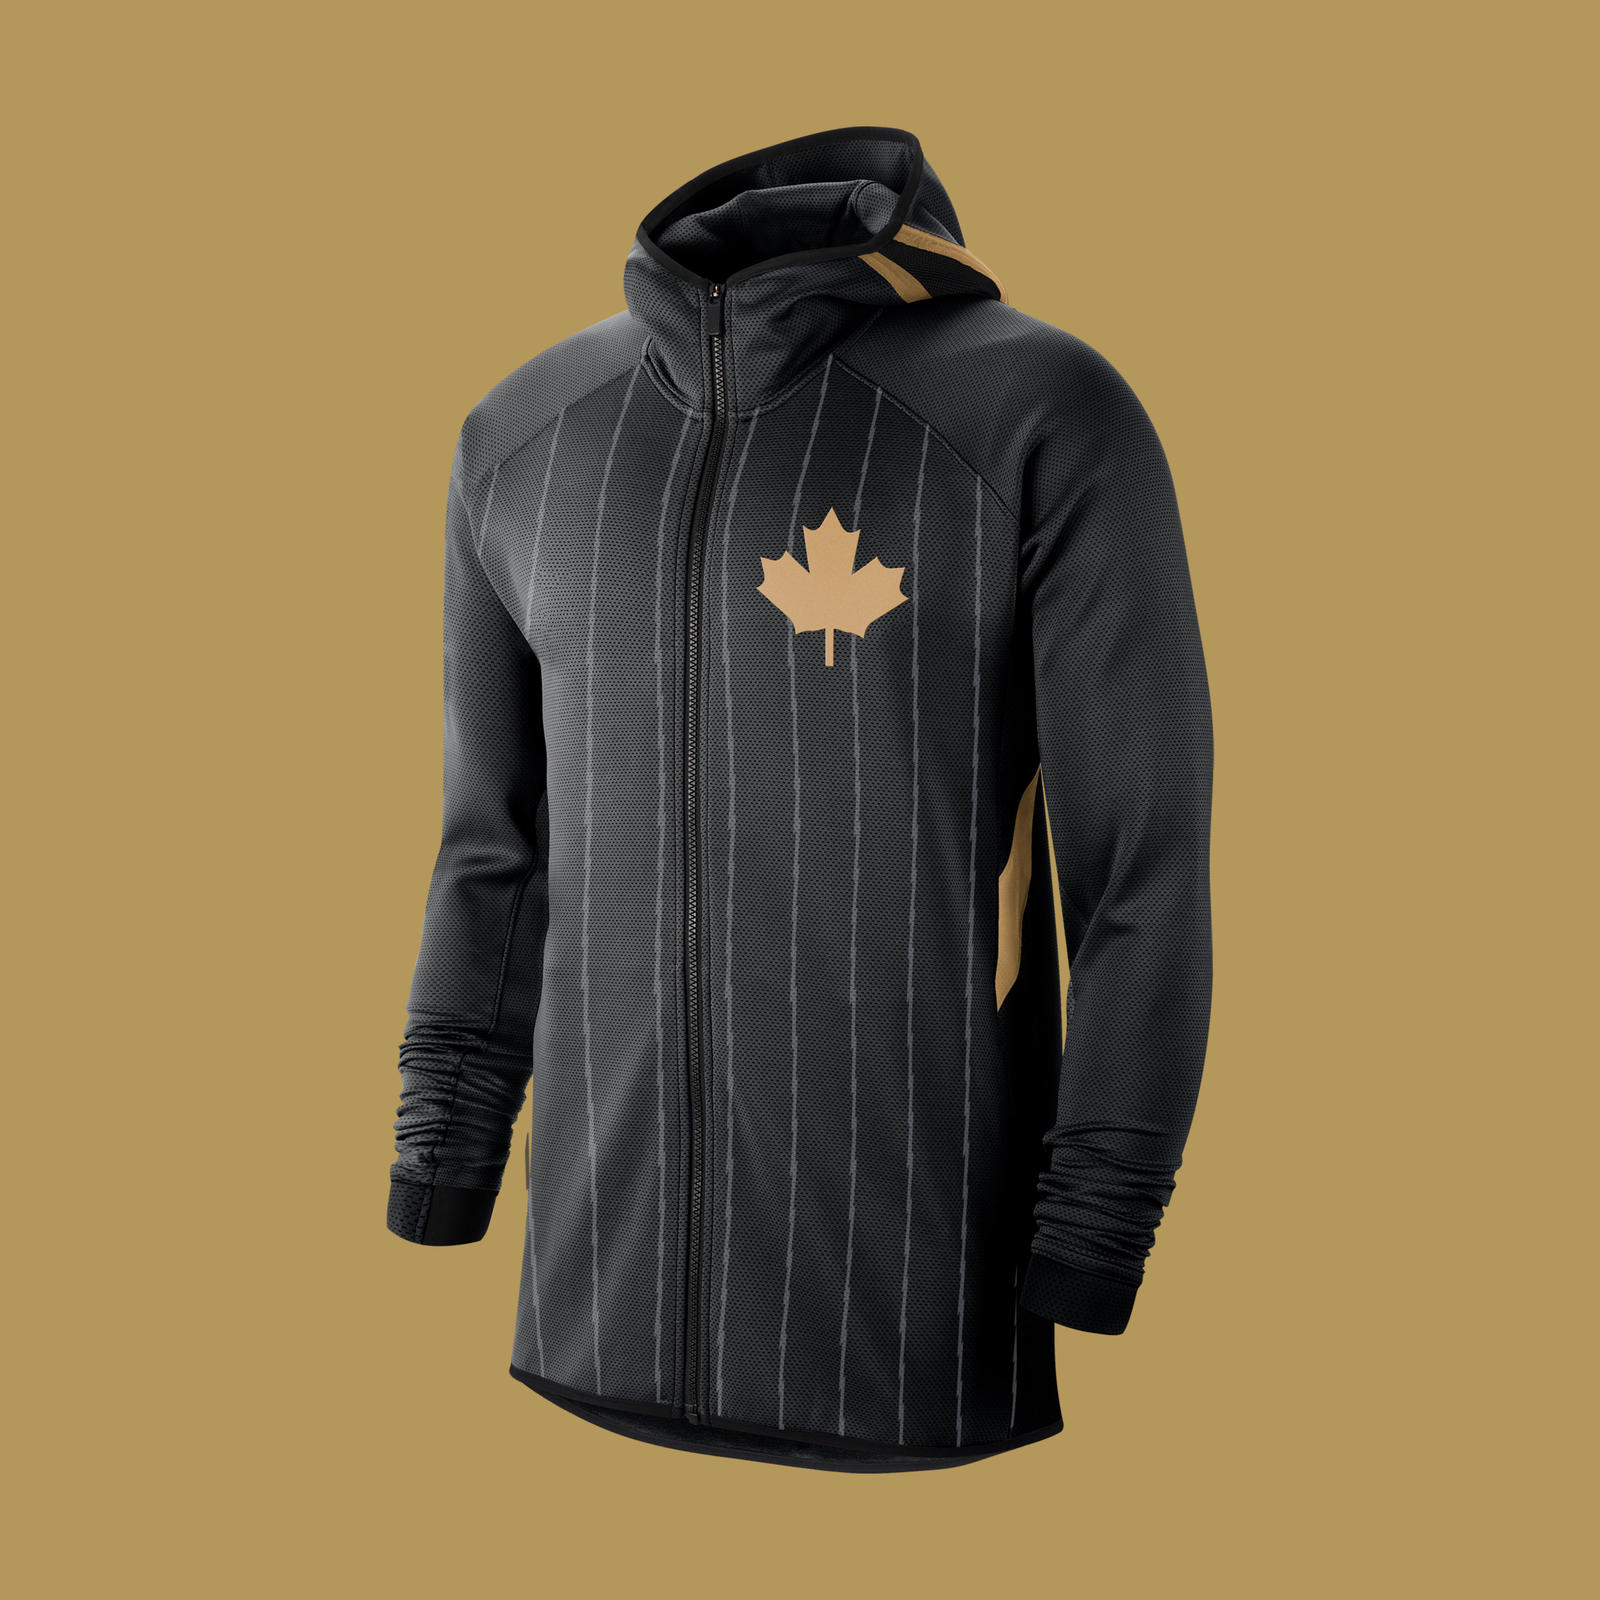 Nike NBA Earned Edition Showtime Hoodies 2019-20 Official Images 4